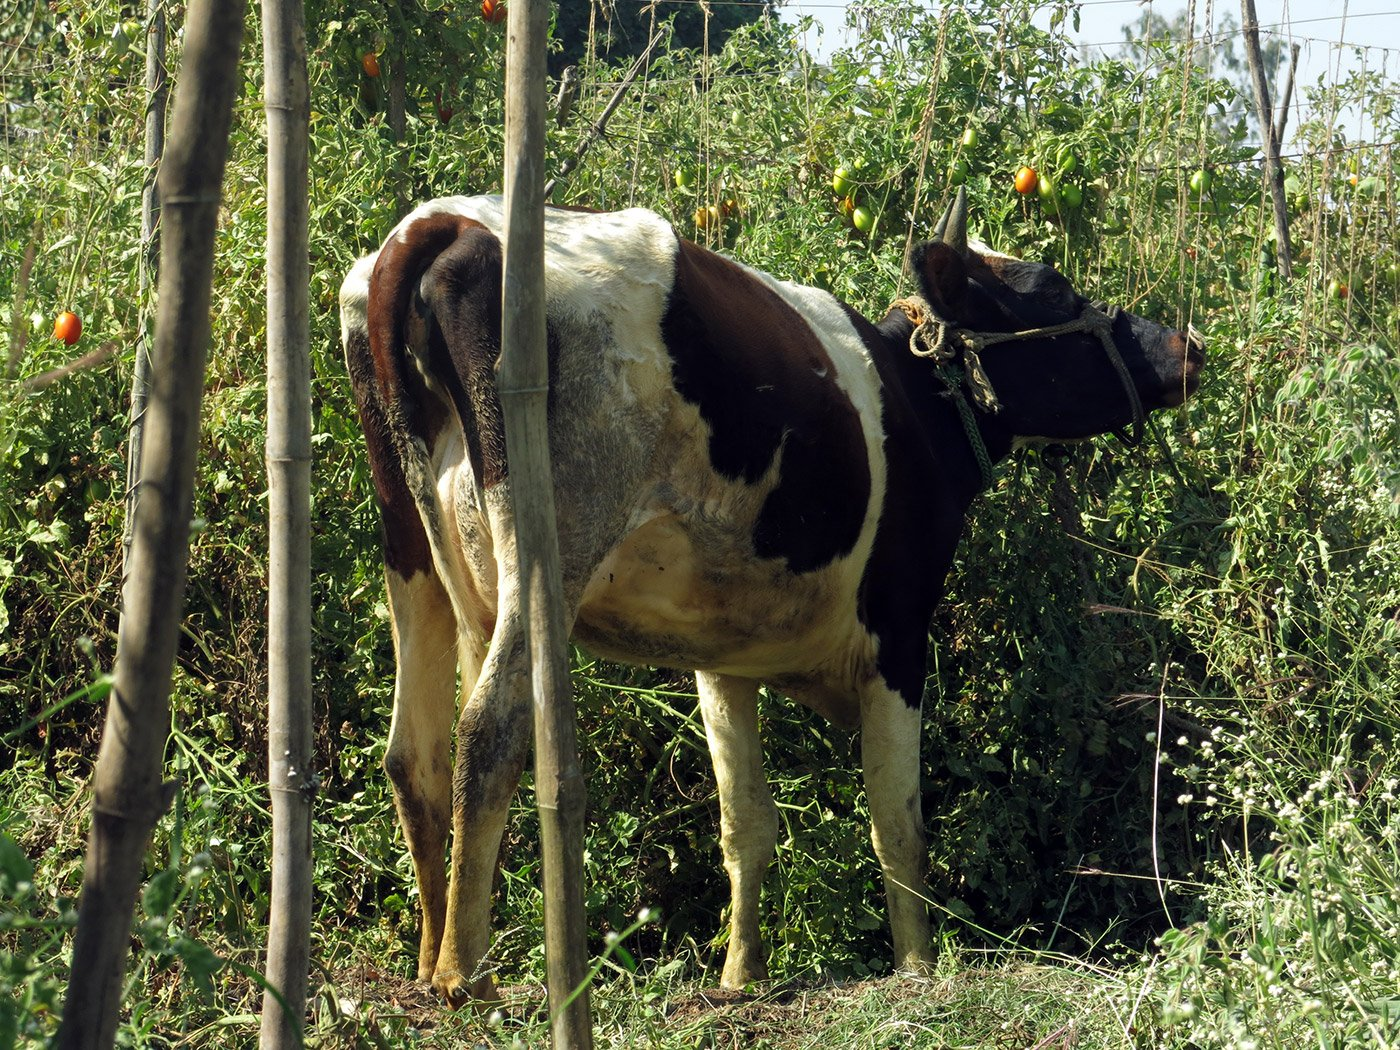 With hardly any buyers, farmer Somnath Thete has let his cows graze on his tomato crop.